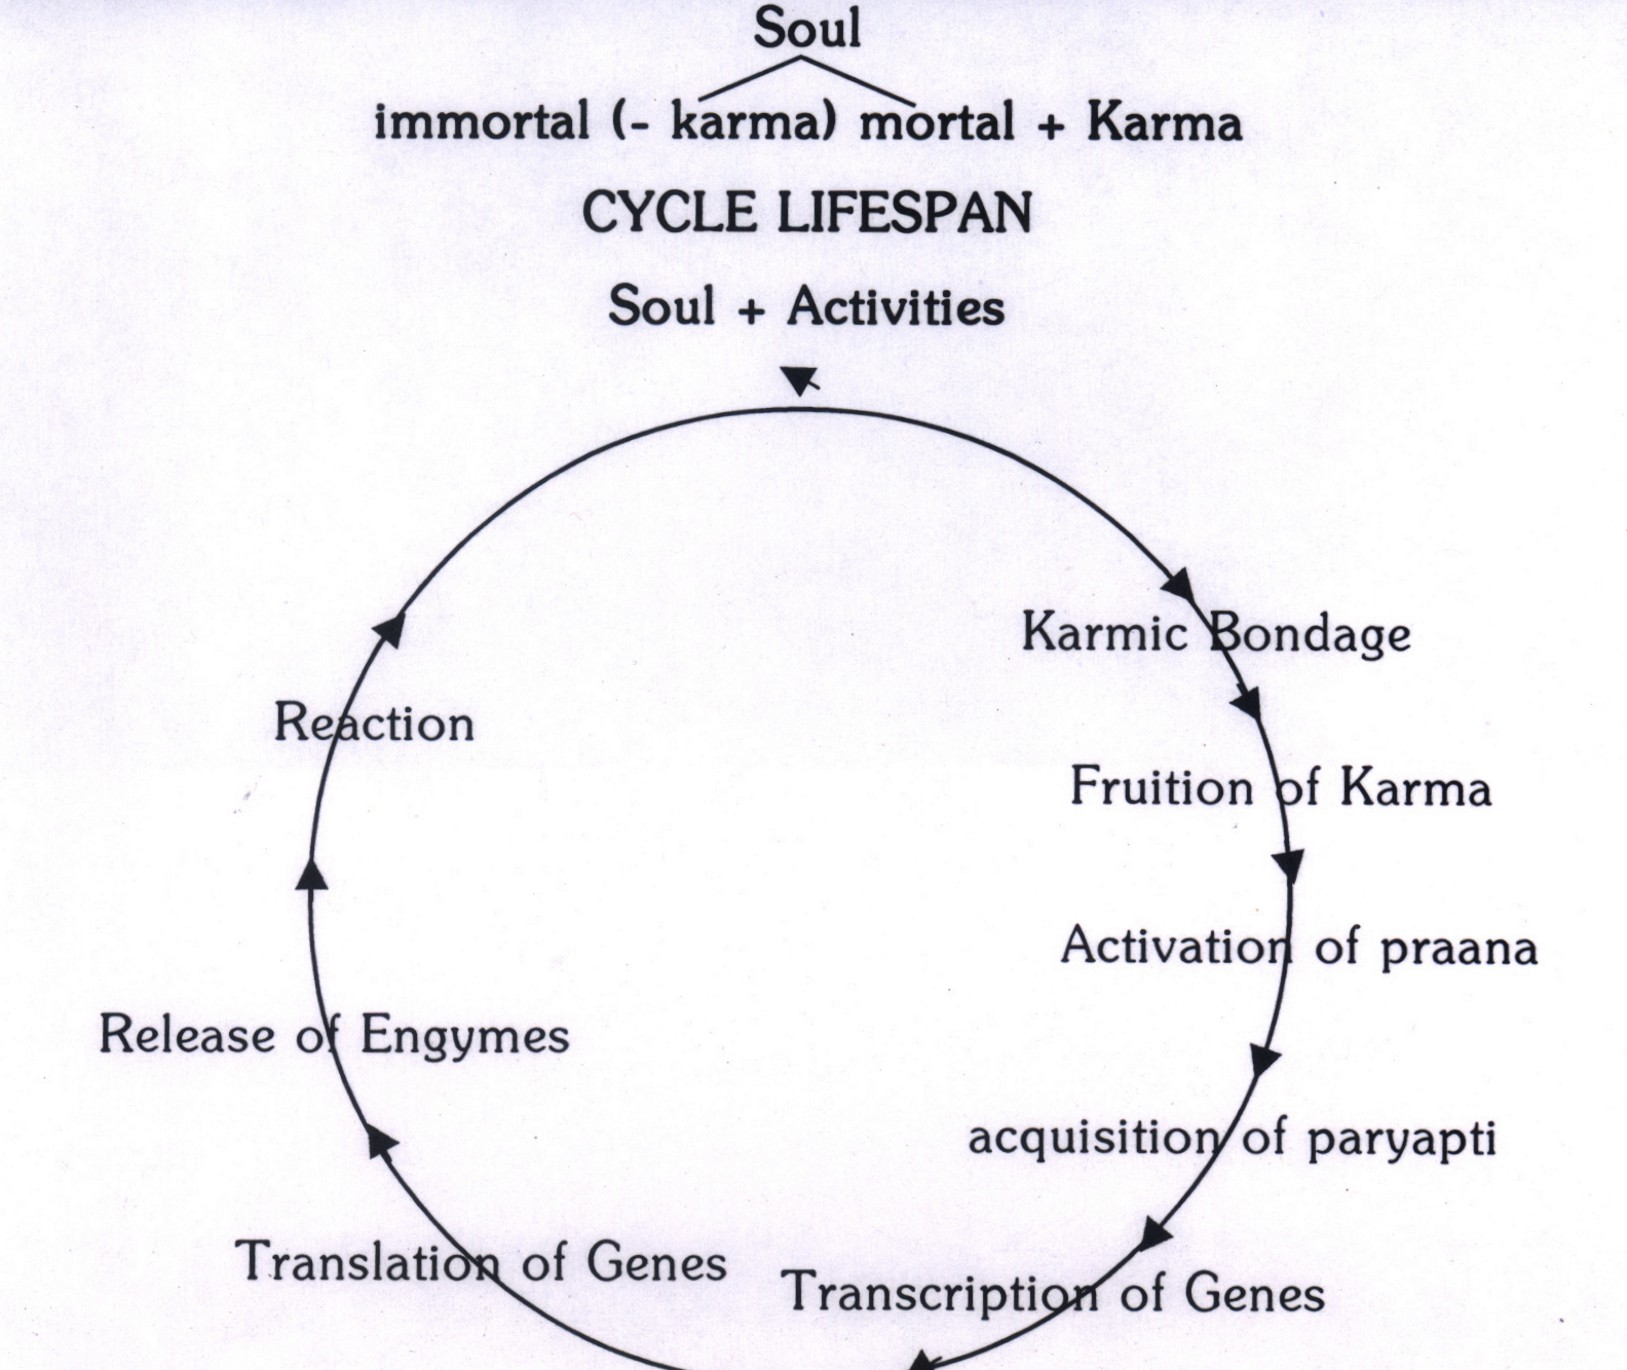 Karma Hinduism Cycle   bondage of karma and chainHindu Reincarnation Cycle